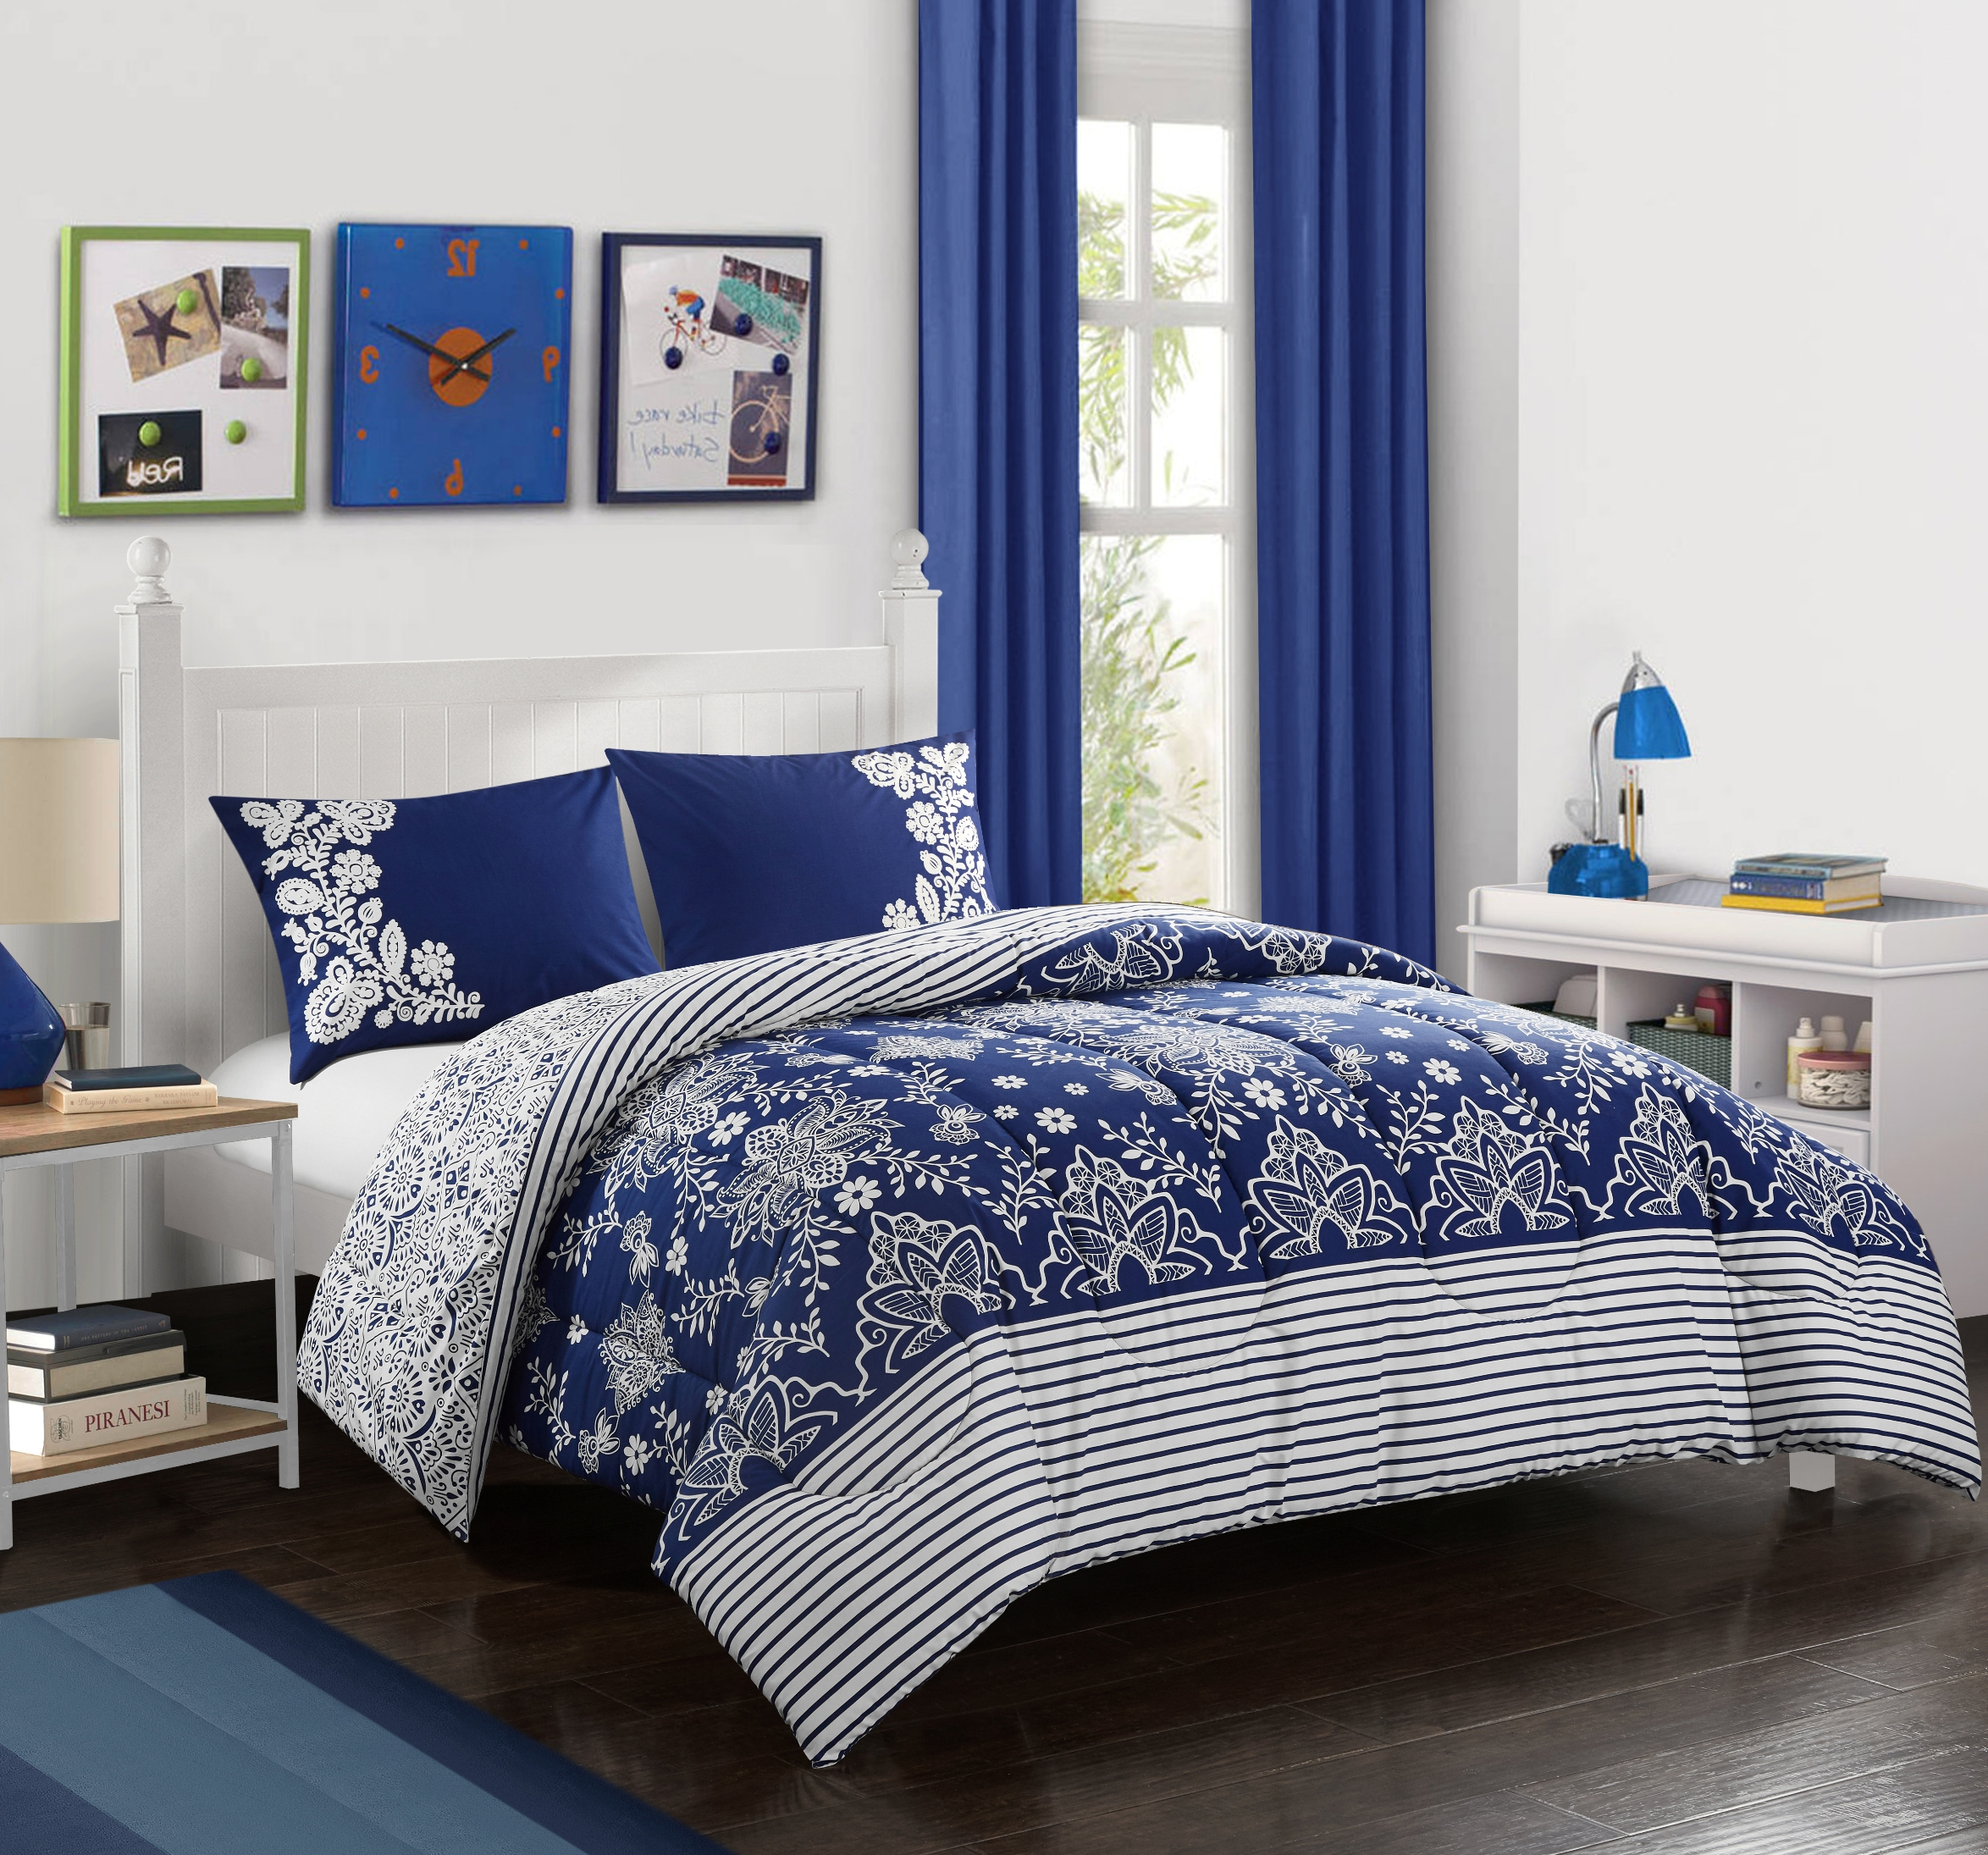 Better Homes & Gardens Flowing Floral Comforter Set